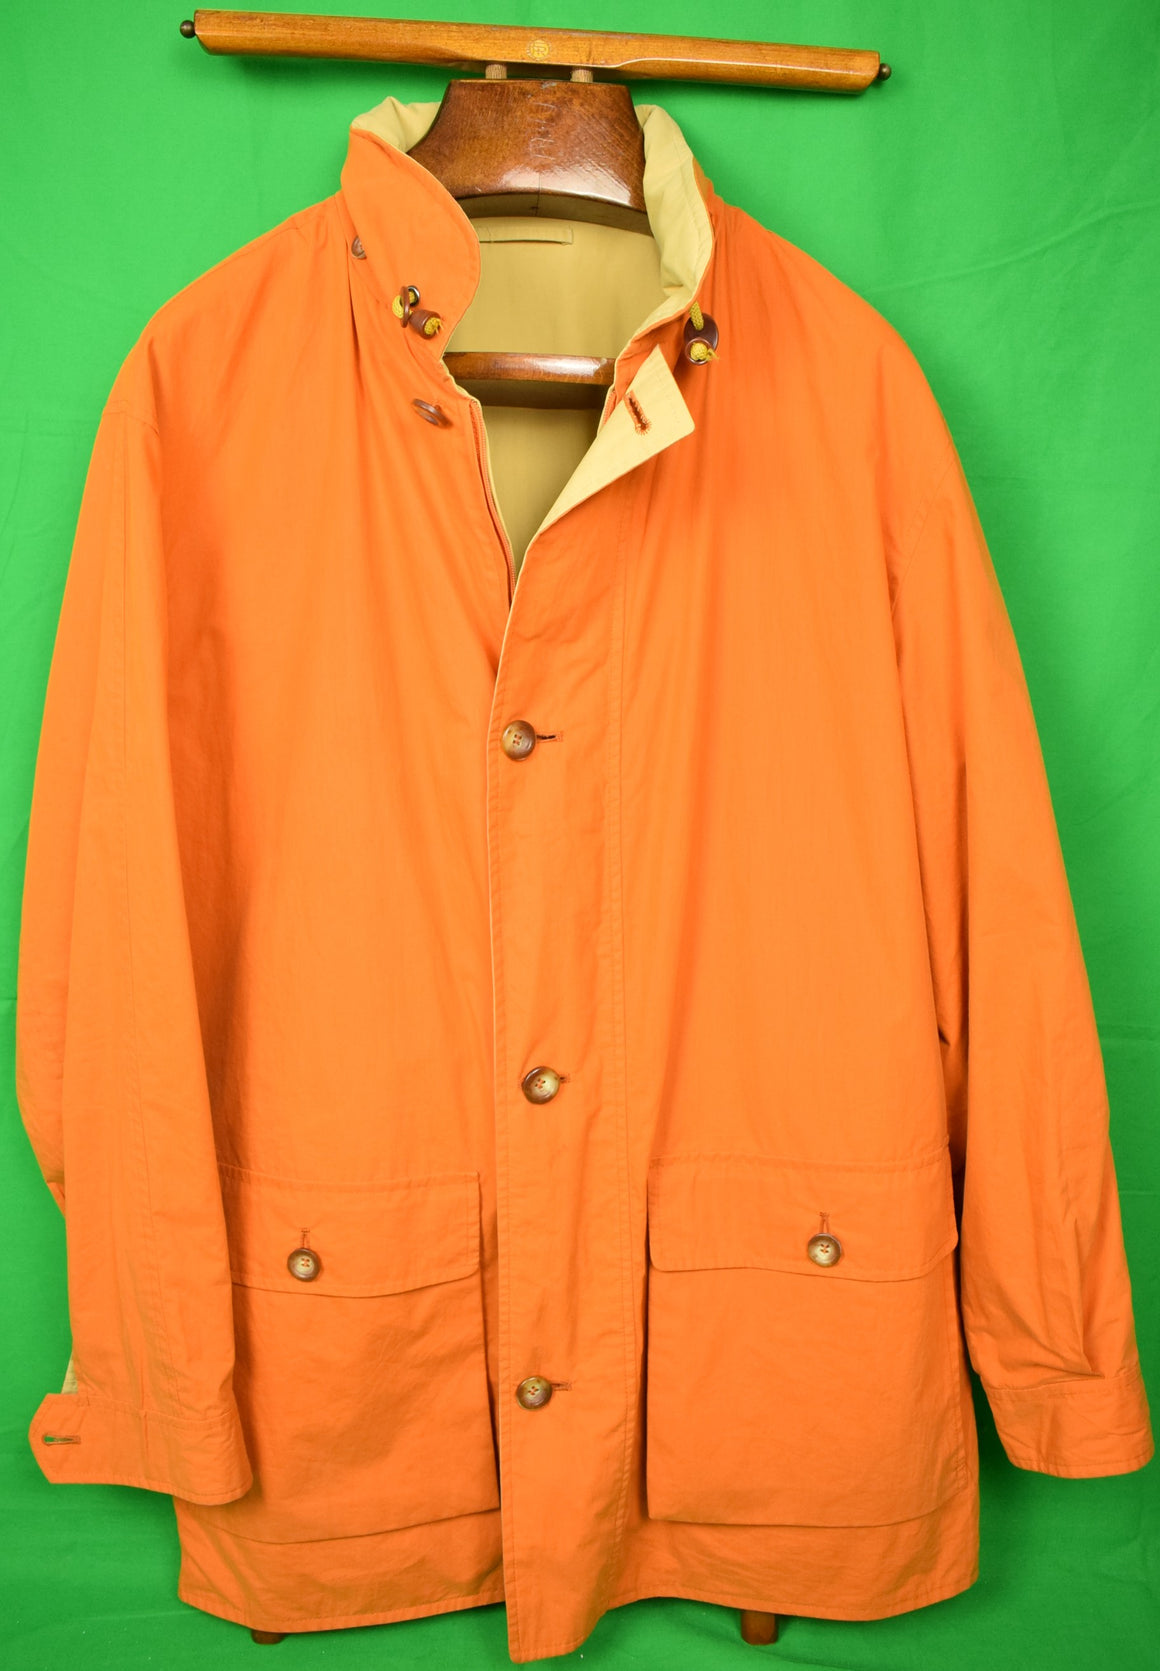 Paul Stuart Reversable Orange/ Tan Italian Sueded Cotton Jacket Sz 42R